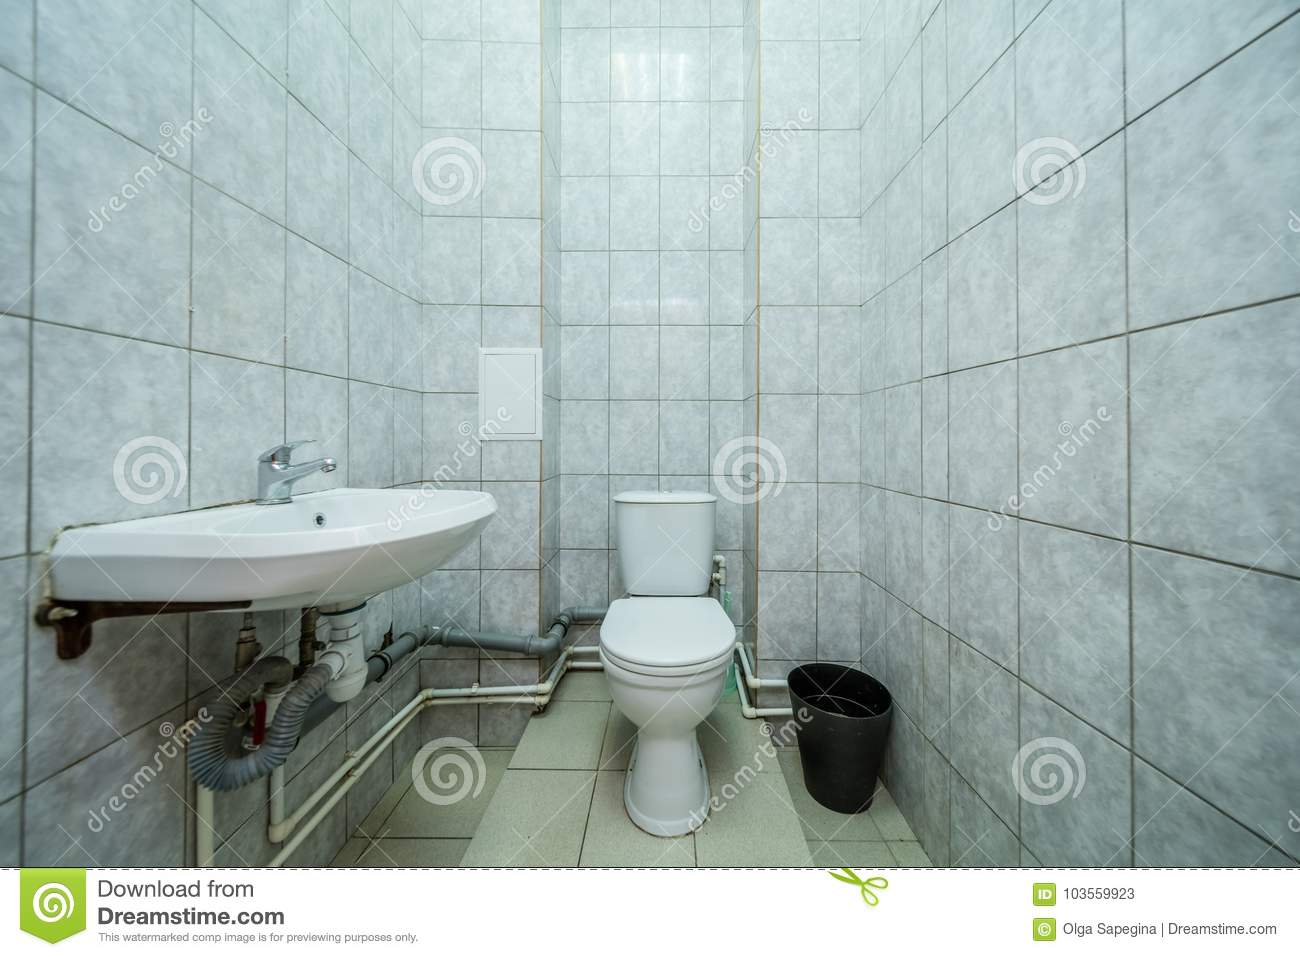 Restroom with toilet stock image. Image of modern, hygiene - 103559923